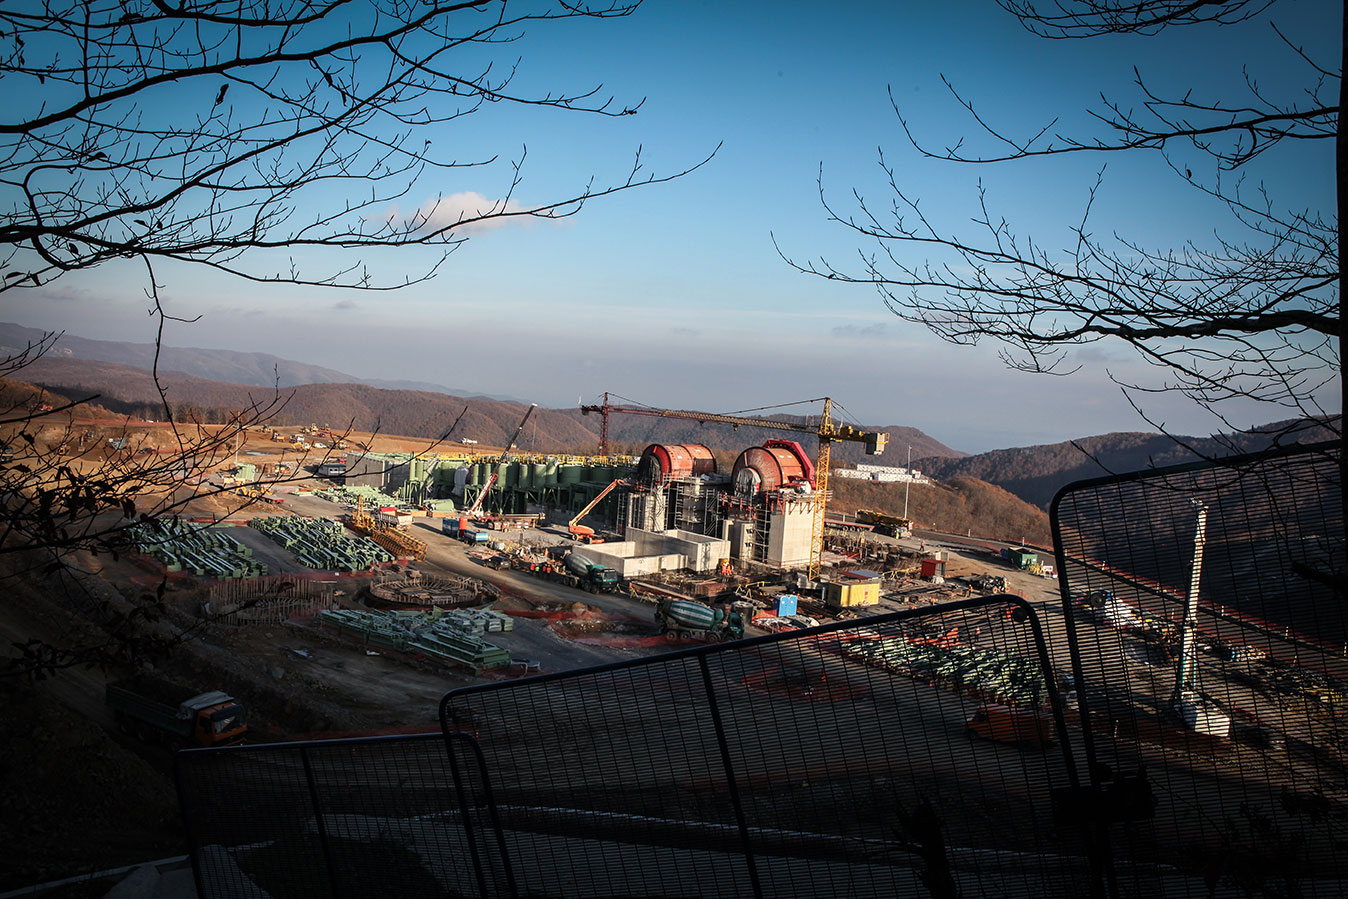 For locals, the scandal involving the Skouries mine, located some 115 km from Thessaloniki, embodies the political, economic and moral crises that drove the nation to bankruptcy. By 2010, with the government's acquiescence, Hellas Gold (an Eldorado Gold affiliate) launched an open-air gold mine on the northern side of the Chalkidiki Peninsula. The mine is just 2.5 km away from the closest village, and operates in complete contempt of all local environmental regulations.